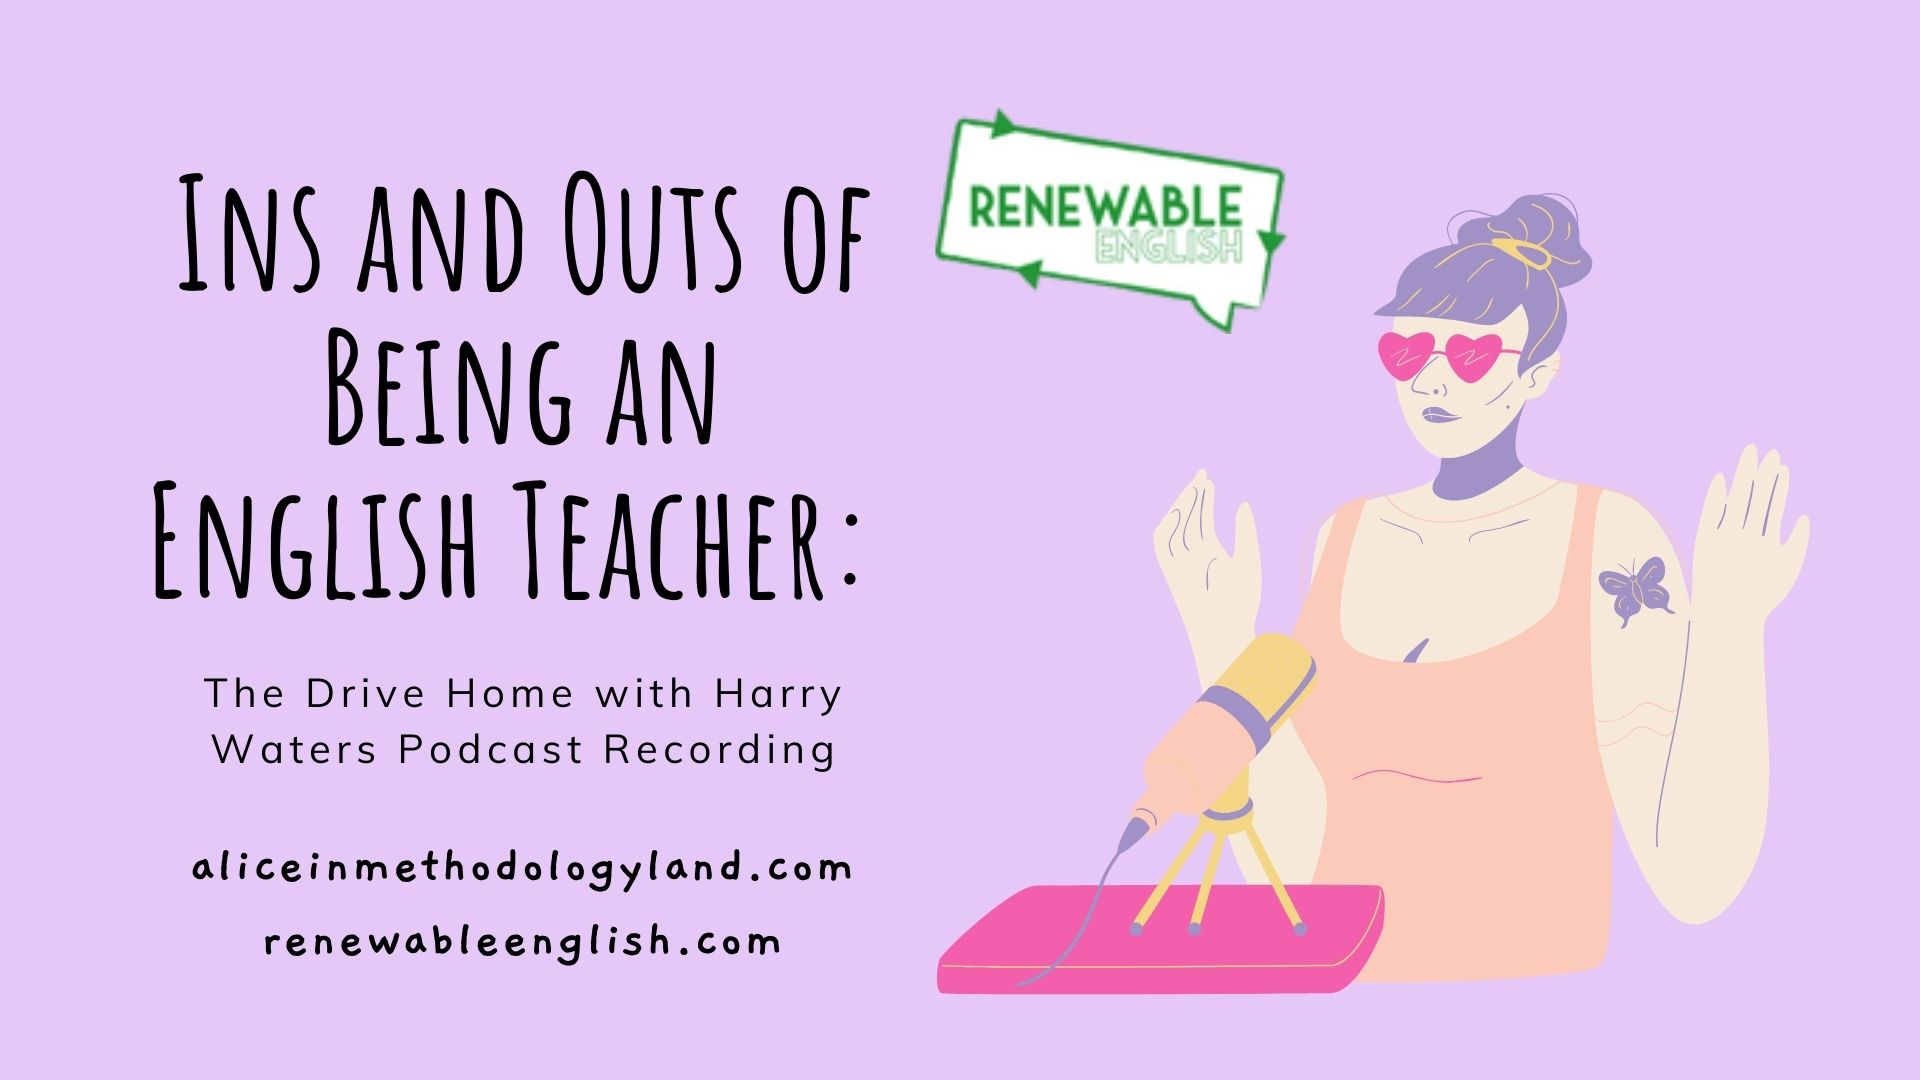 Ins and Outs of Being an English Teacher: The Drive Home with Harry Waters Podcast Recording